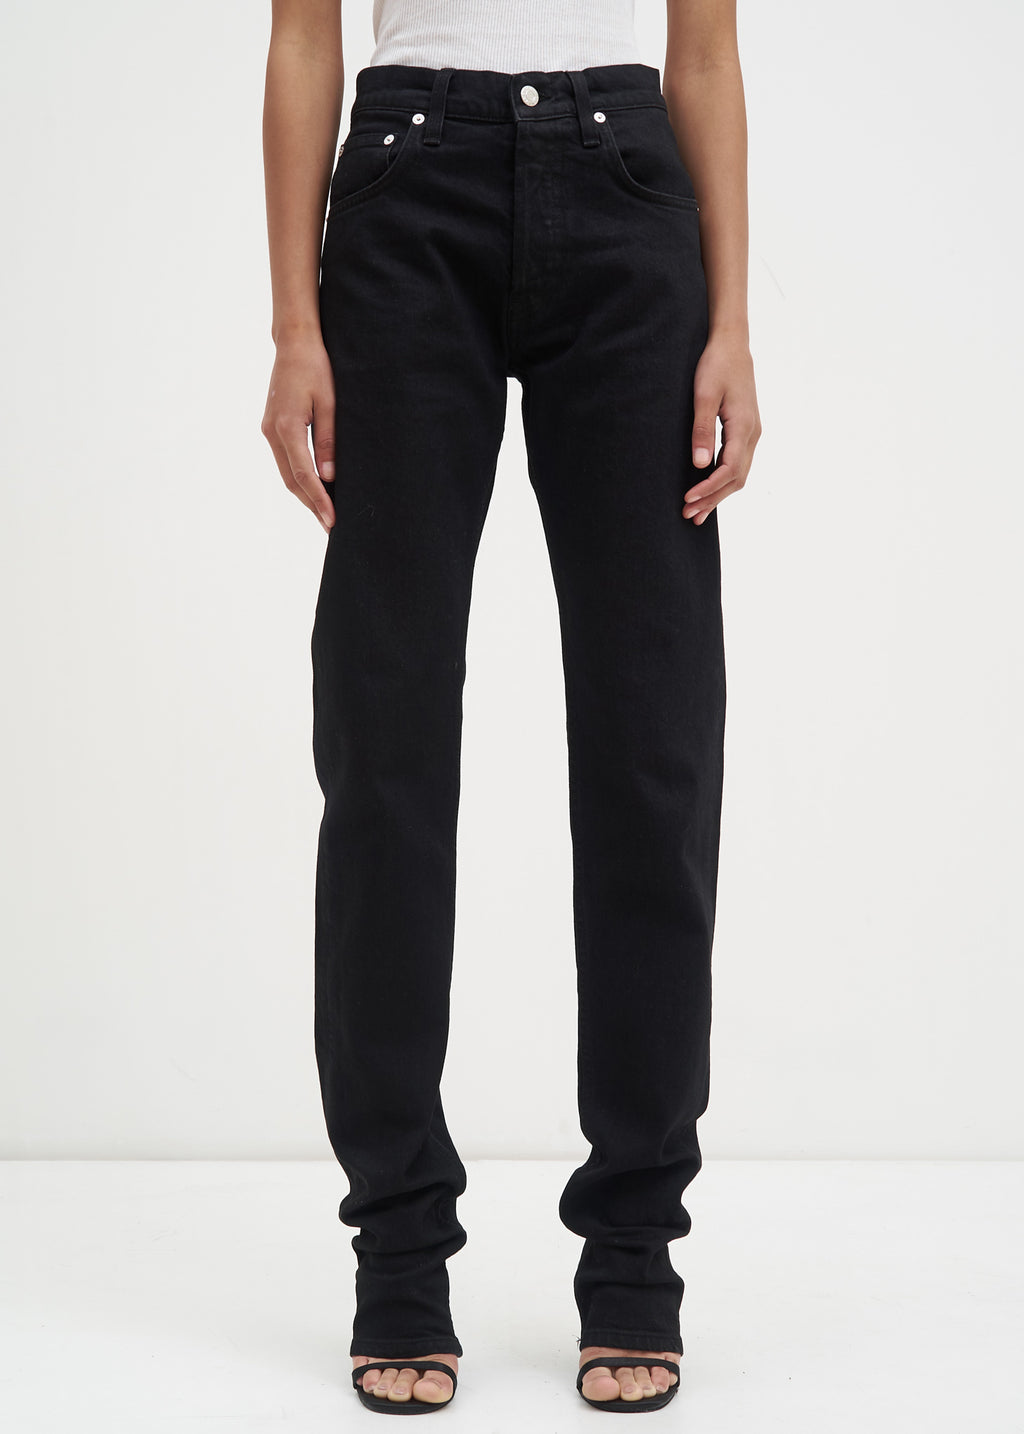 Black Masc Hi Drainpipe Jeans in Black